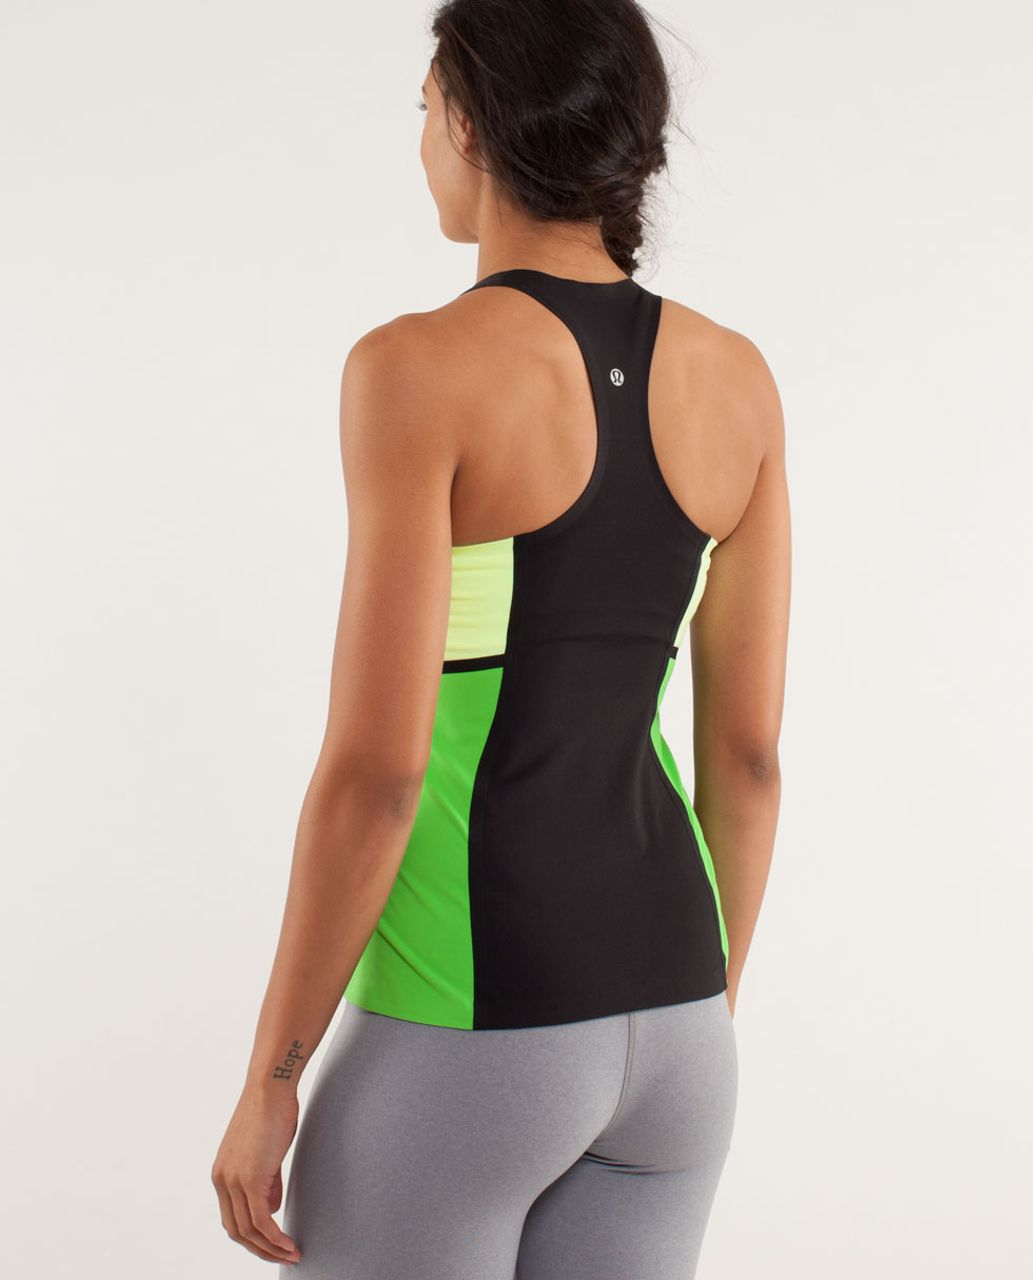 Lululemon Cool Racerback *Surf Bonded - Black / Faded Zap / Frond